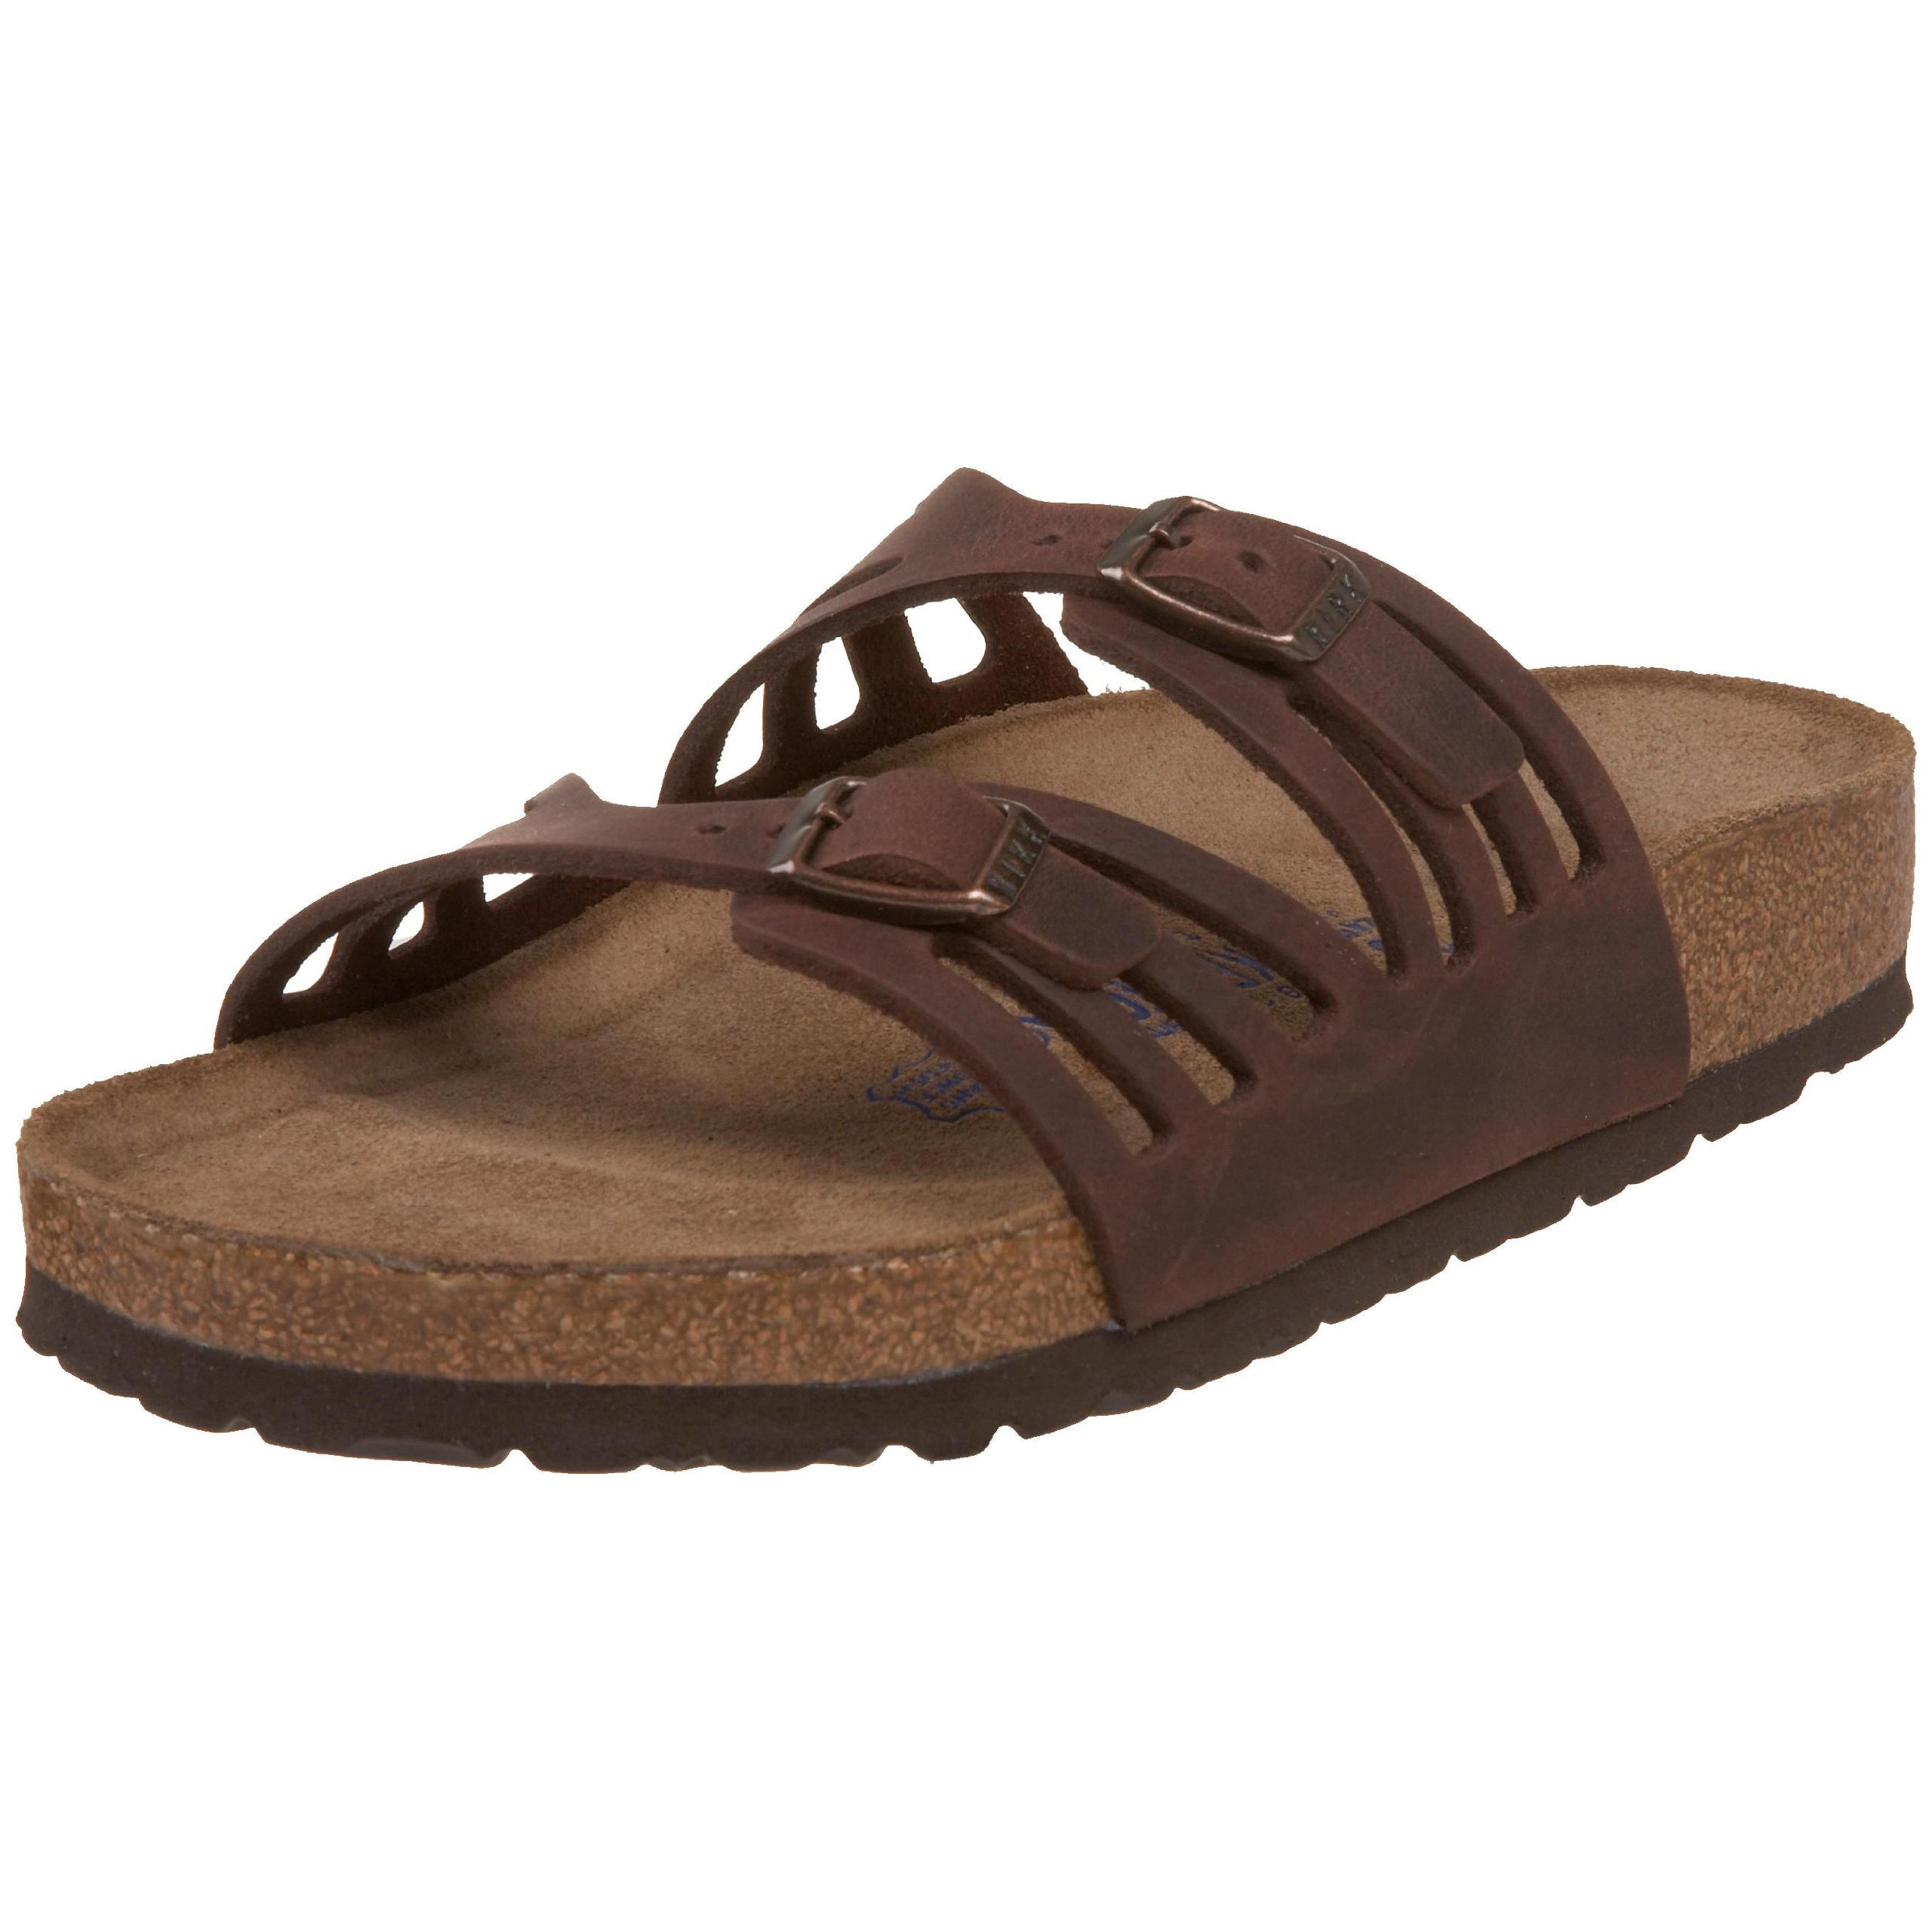 Birkenstock Women's Granada Soft Footbed Sandal,Habana Oiled Leather, 40 M EU/9-9.5 B(M) US